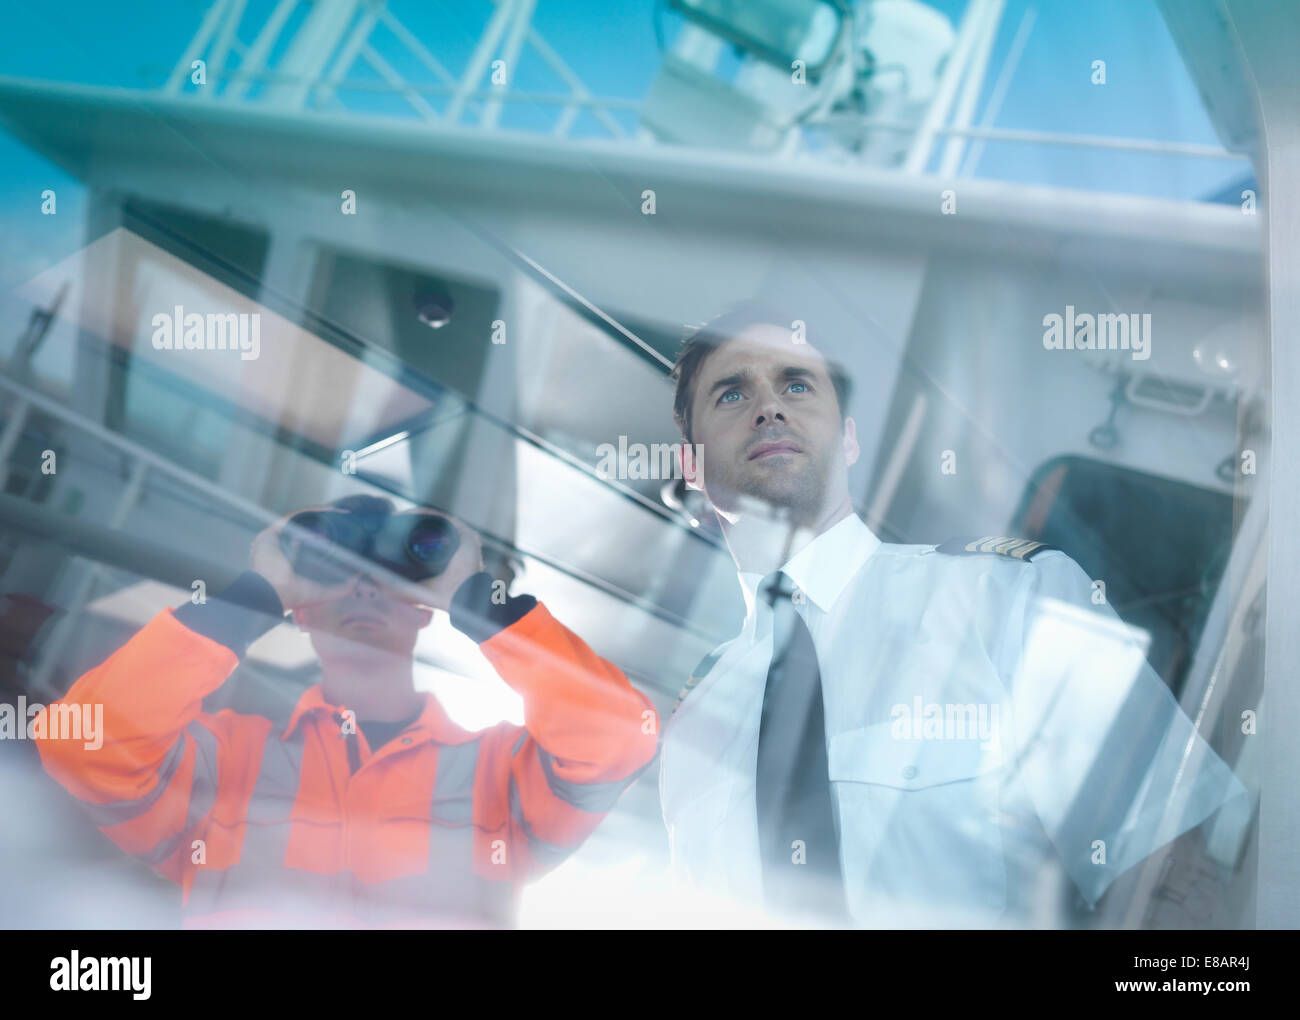 Ship's captain and worker seen through reflections on container ship - Stock Image